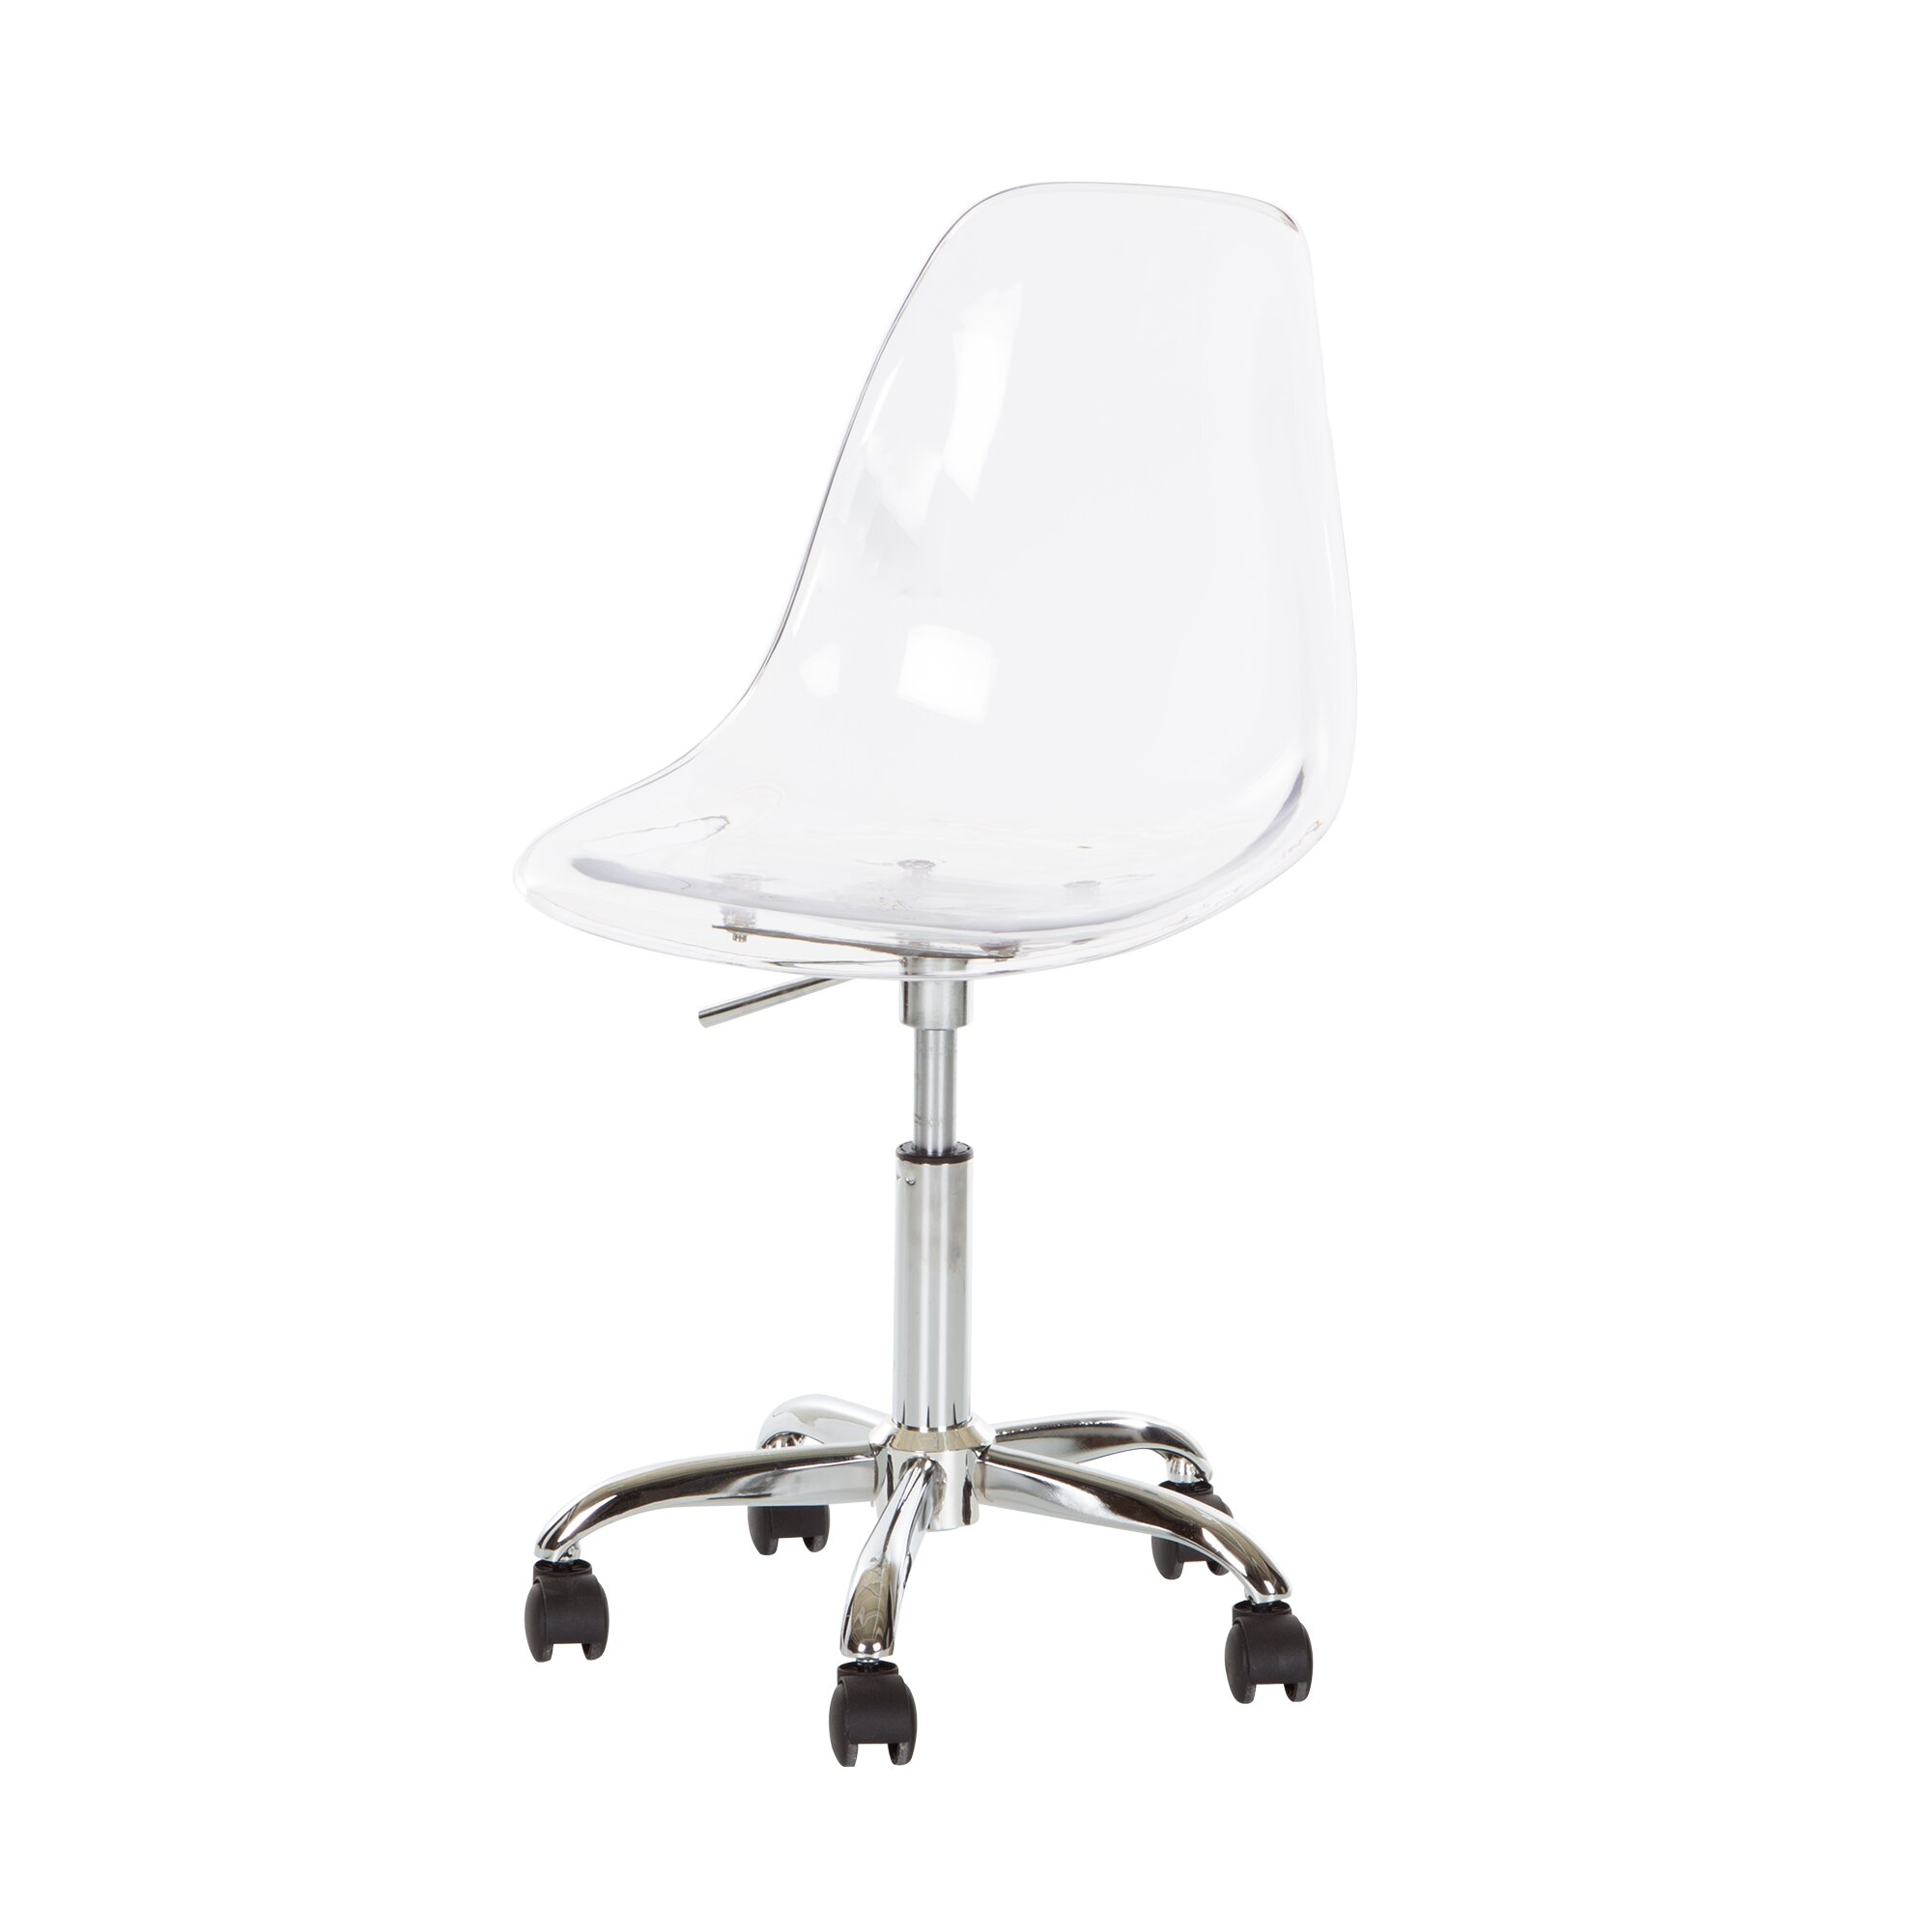 Acrylic clear chairs - All Office Chairs South Shore Sku